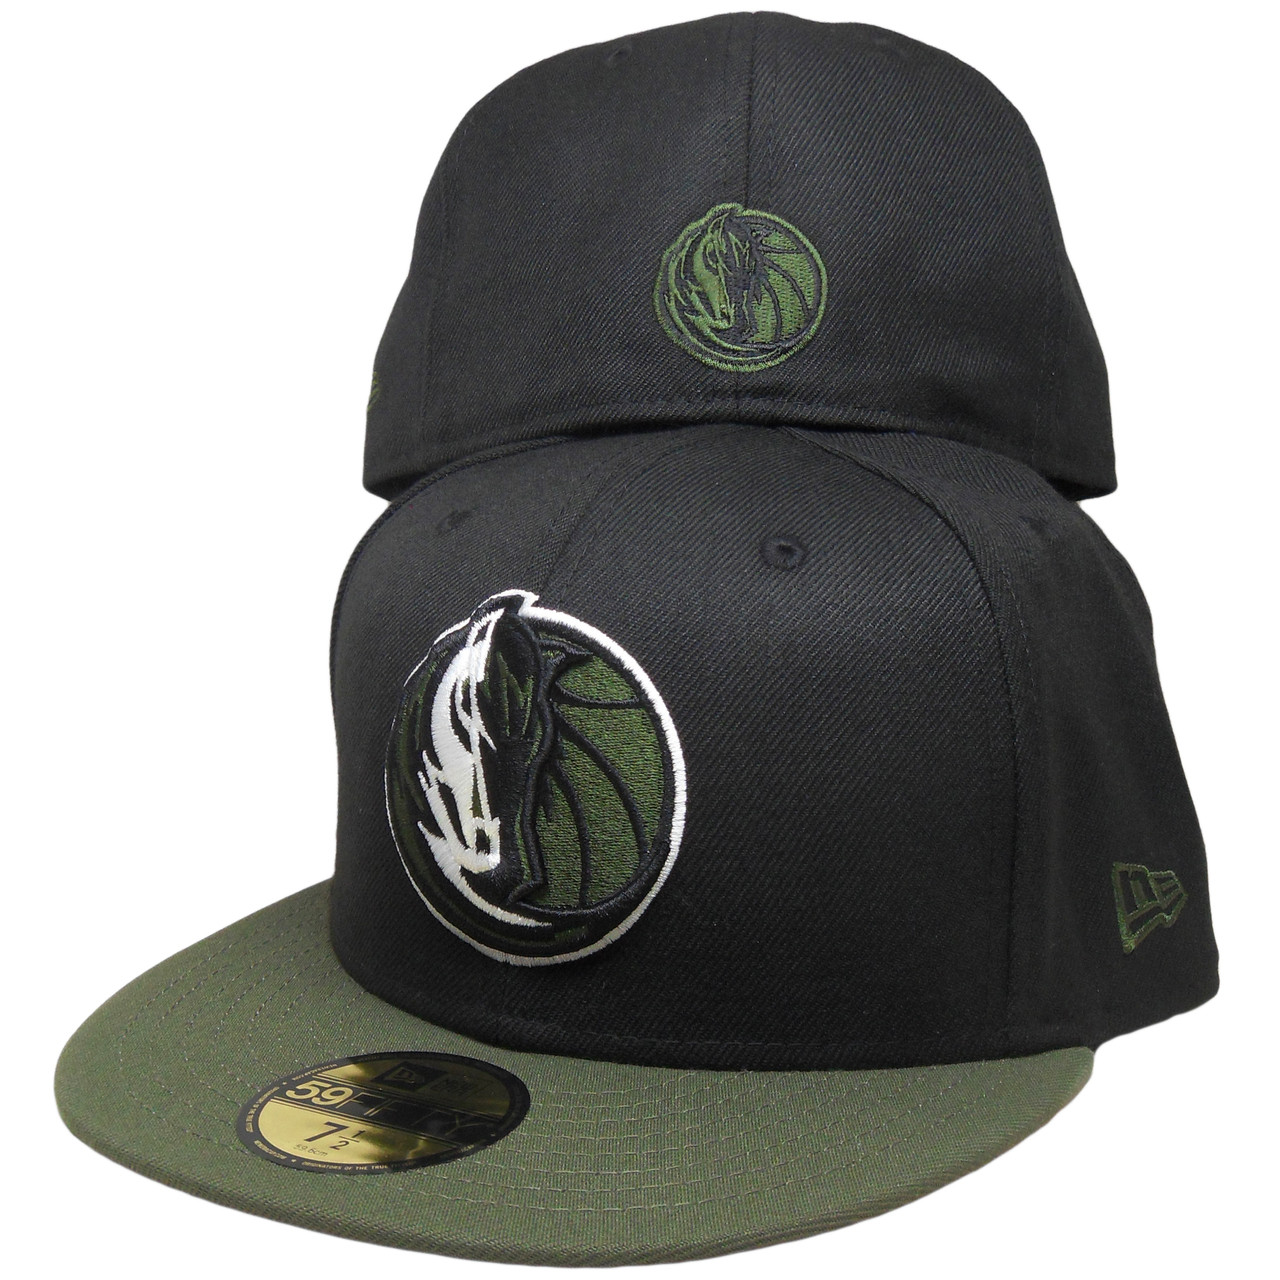 ae306fa9ac6fb Dallas Mavericks New Era Custom 59Fifty Fitted Hat - Black